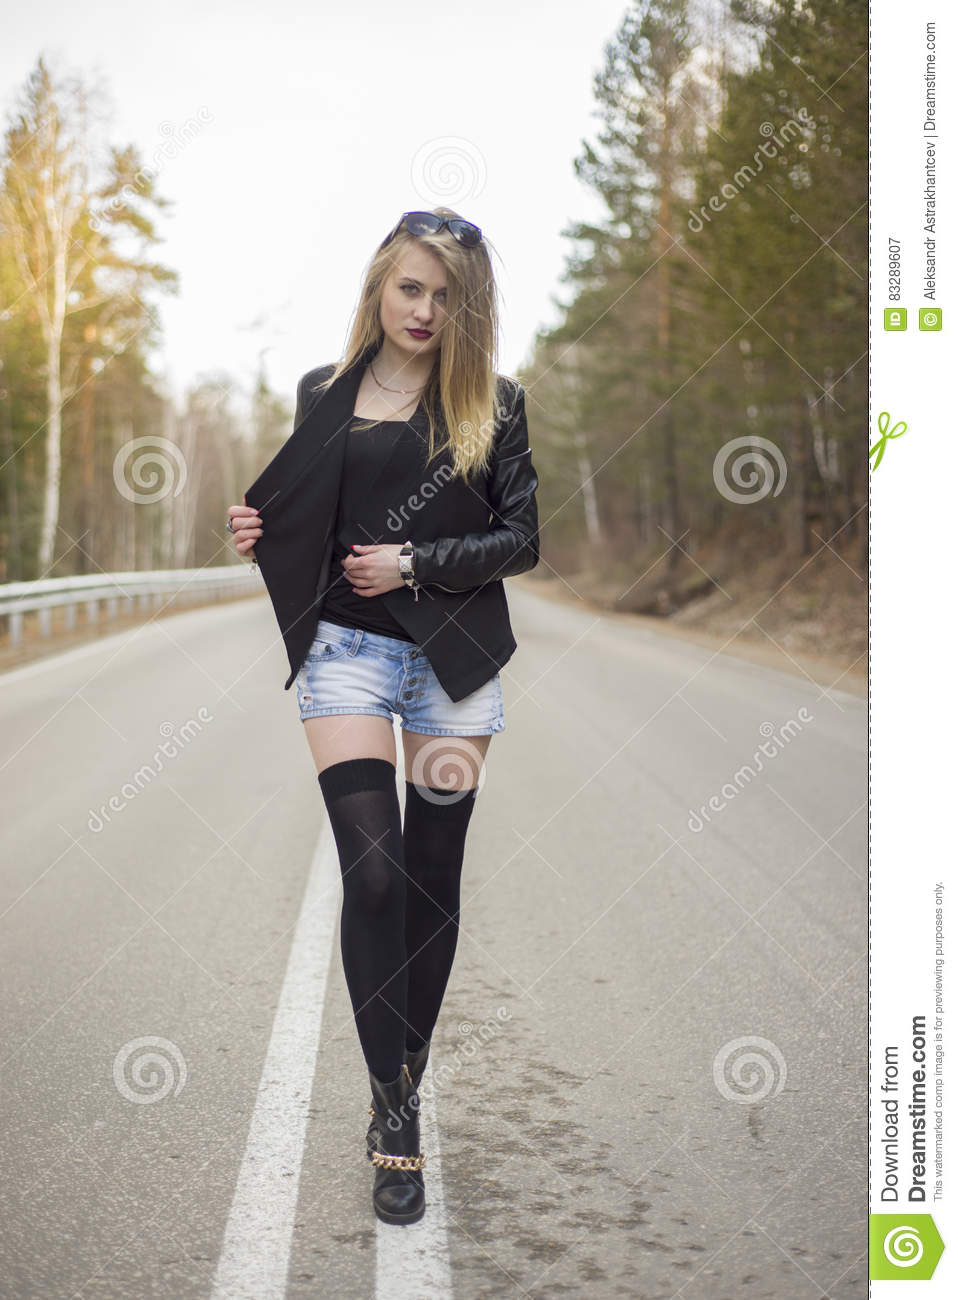 Woman Walking In The Rain On Asphalt Forest Road At Autumn